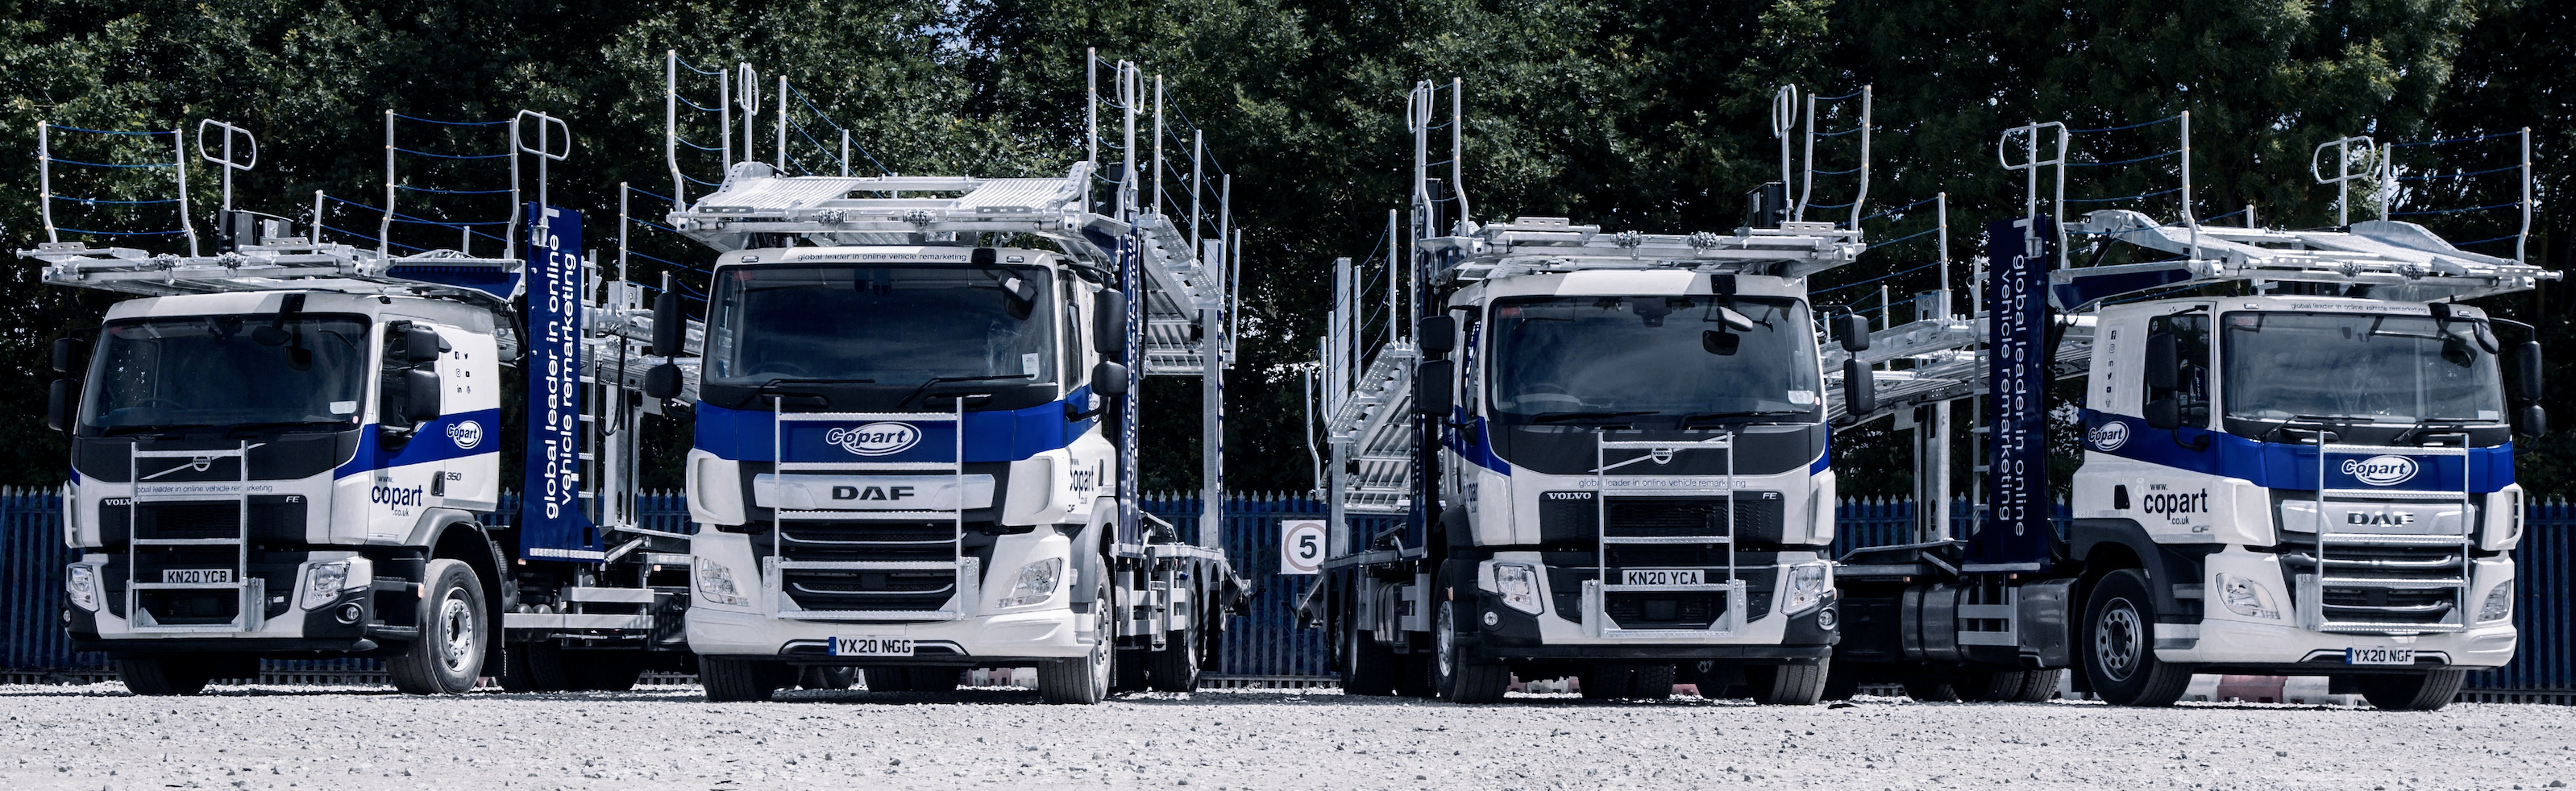 Image of Copart trucks - The UK's leading vehicle remarker